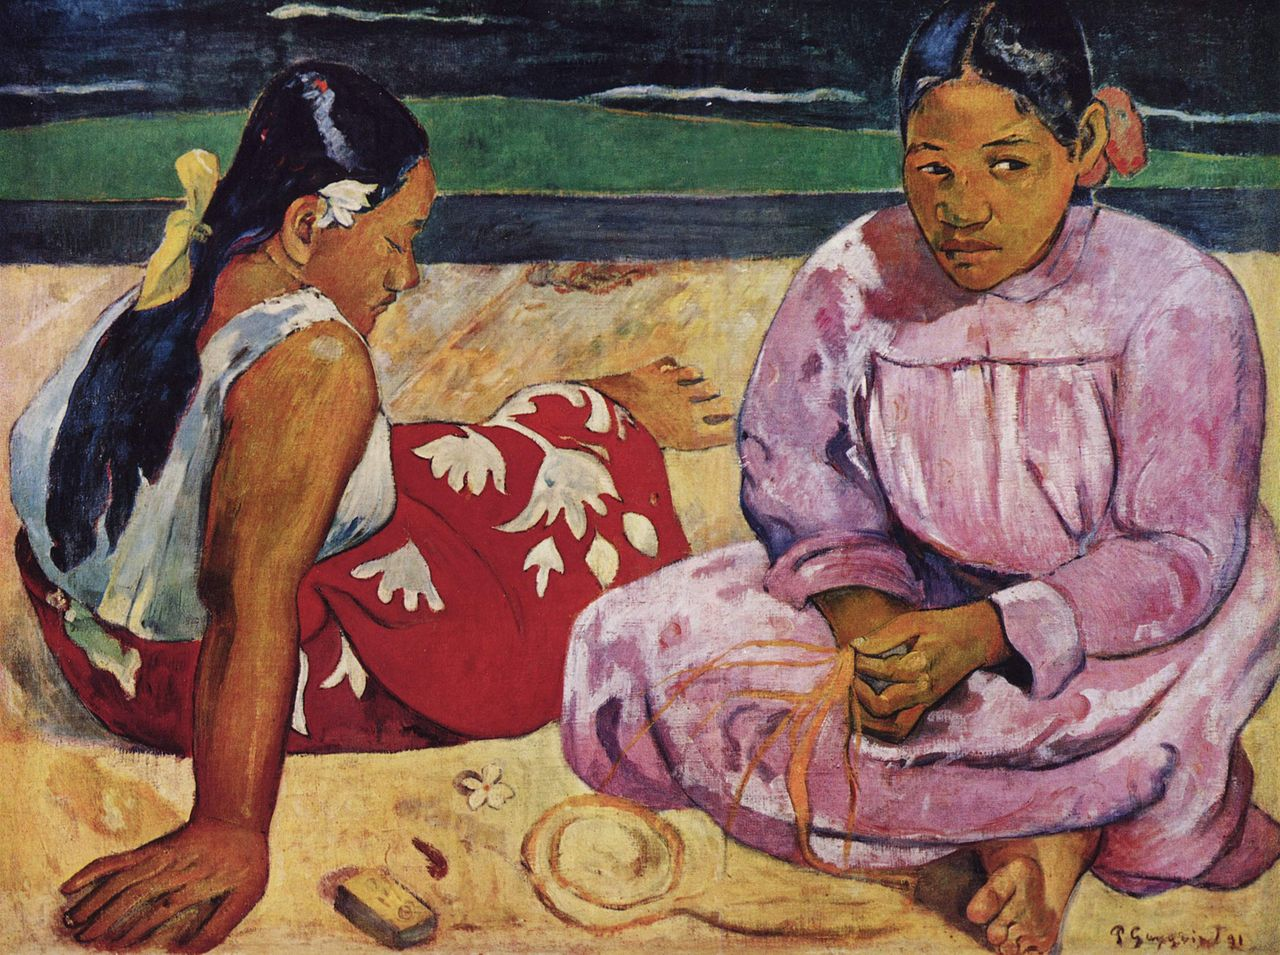 Paul Gauguin, Musee d'Orsay, Paris. What you need to know before visiting the Orsay Museum in Paris, France